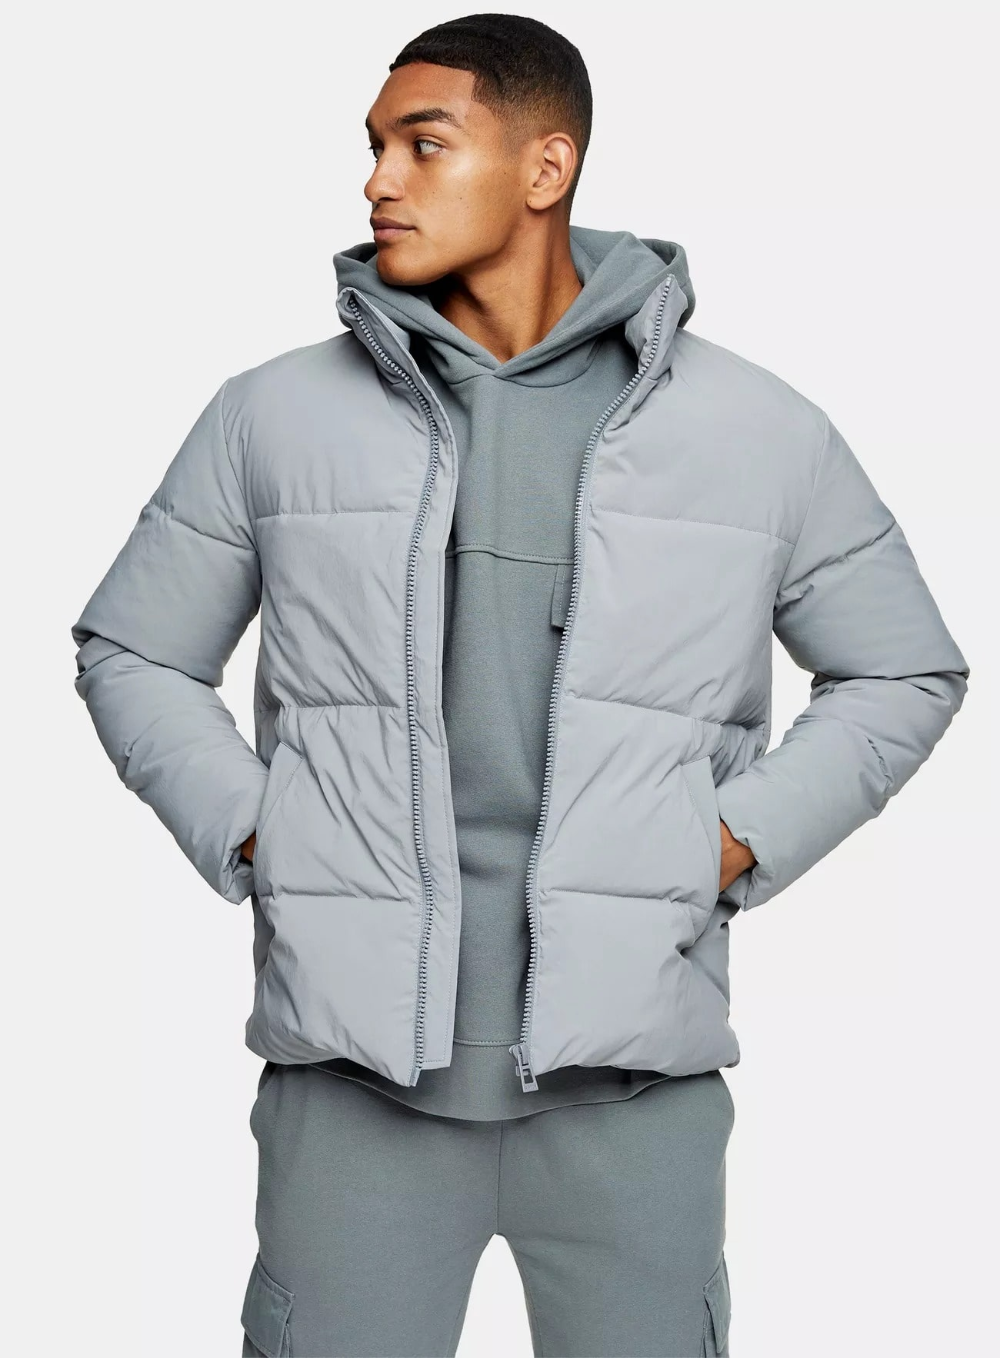 Blue Recycled Polyester Puffer Jacket North Face Puffer Jacket Topman Jackets [ 1358 x 1000 Pixel ]